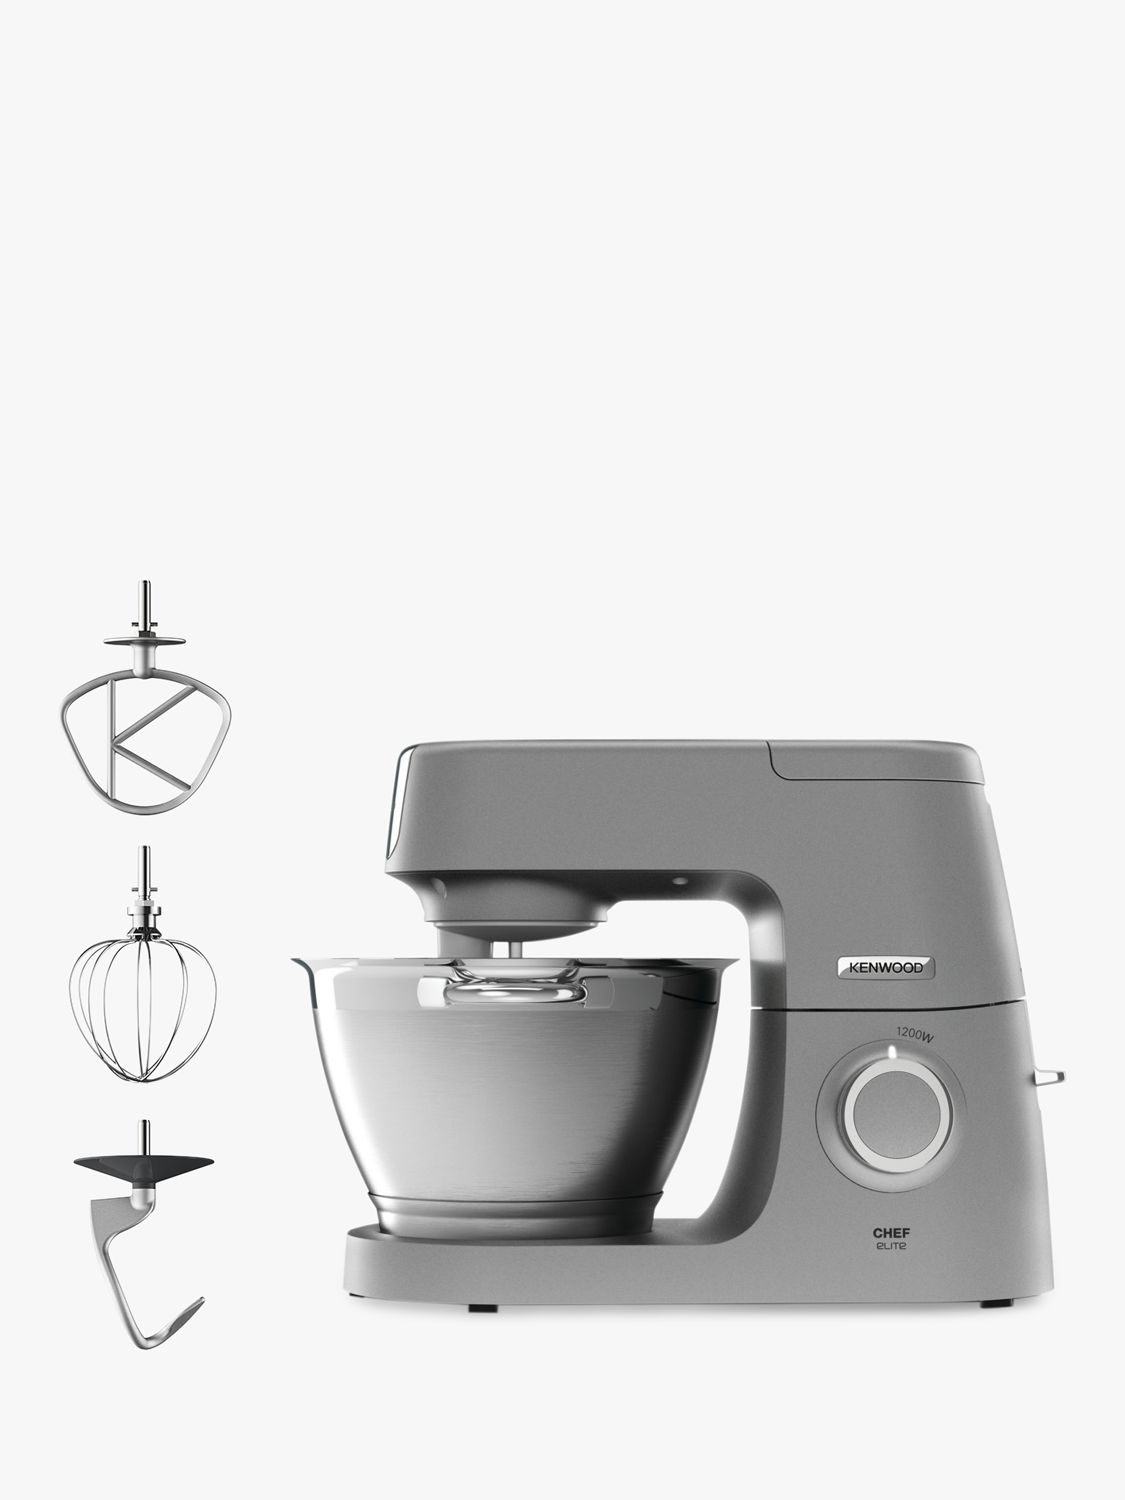 Kenwood Kenwood KVC5100S Chef Elite Stand Mixer, Silver